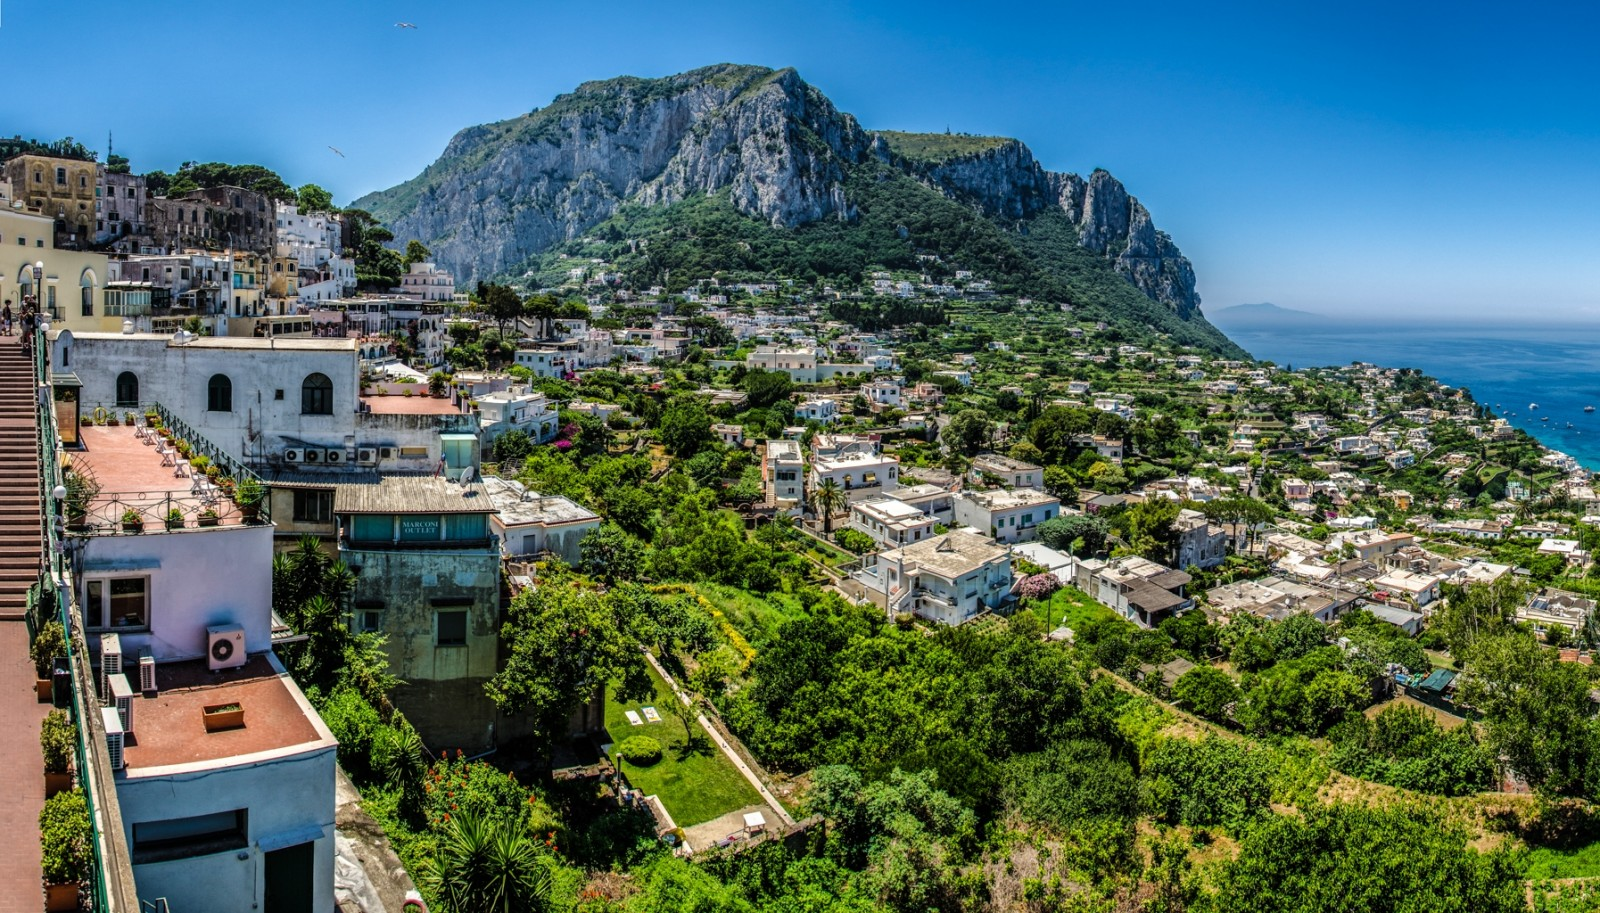 Capri or Anacapri: Which Town to Stay In On the Island of